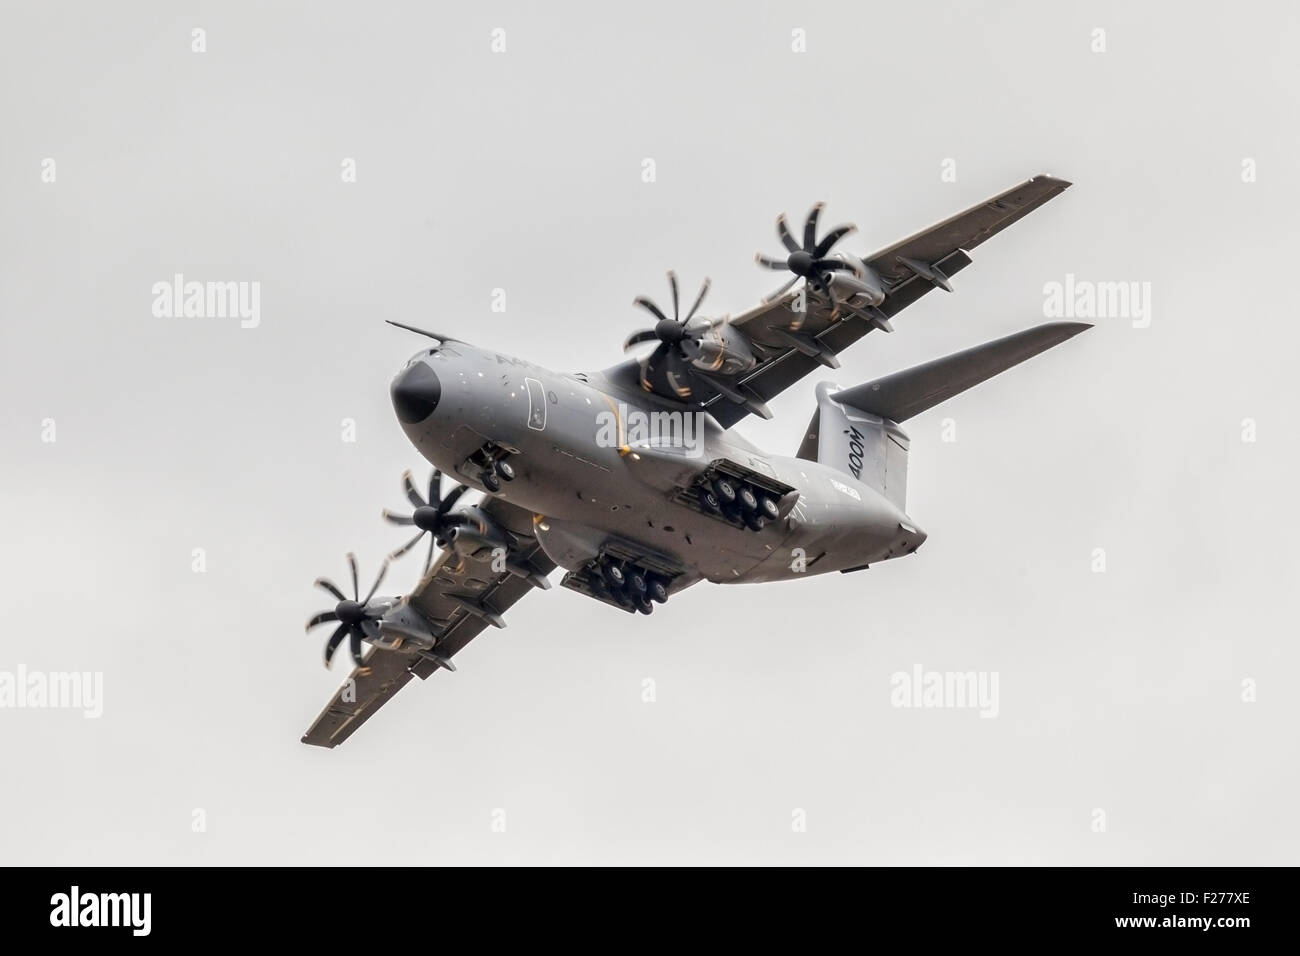 Airbus A400M military transport aircraft being demonstrated at RIAT 2015, at Fairford, Gloucestershire. - Stock Image